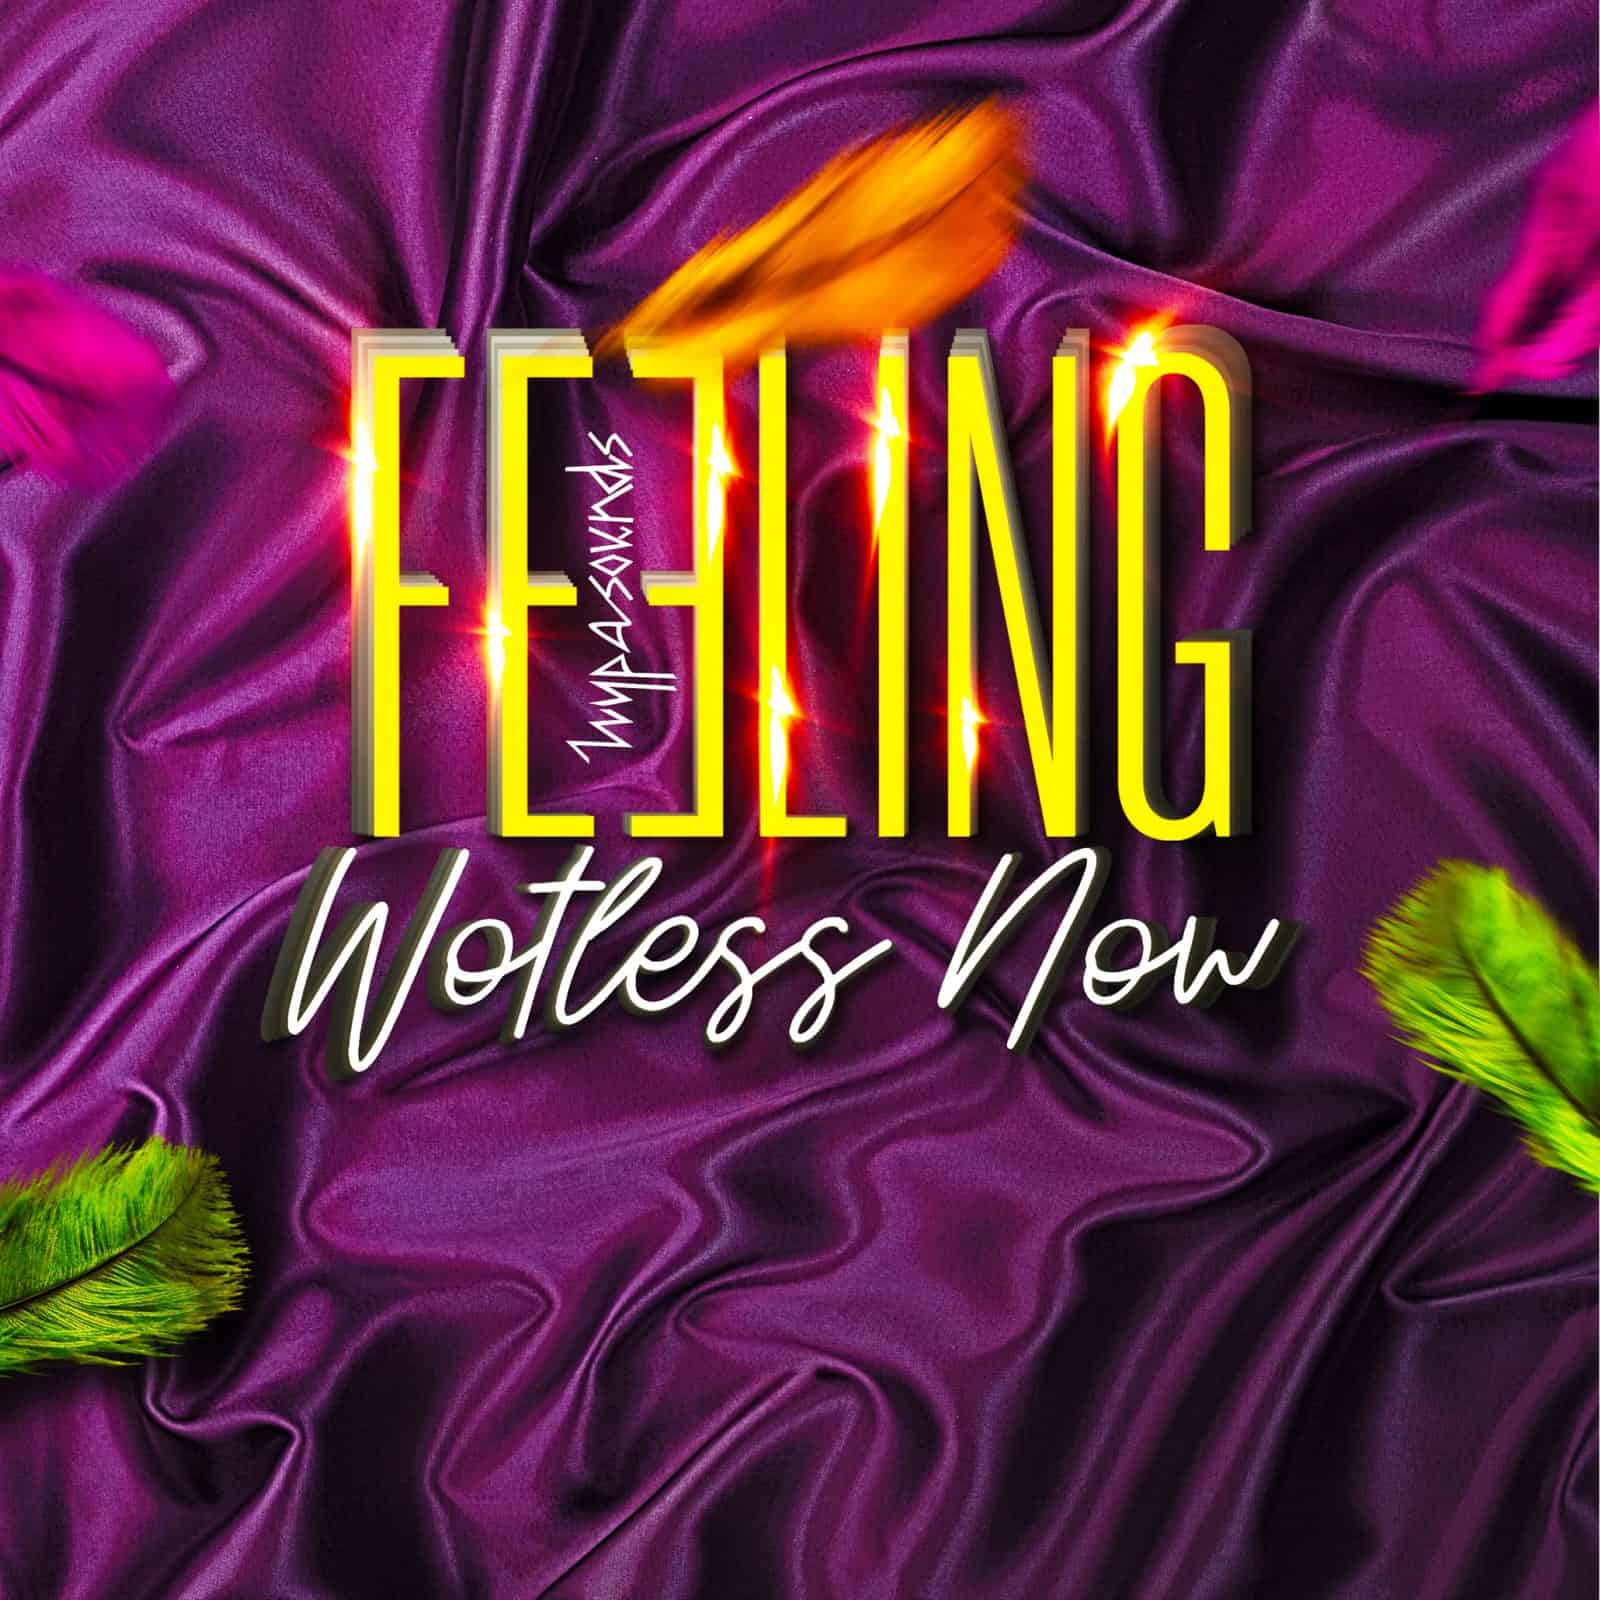 Hypasounds - Feeling Wotless Now